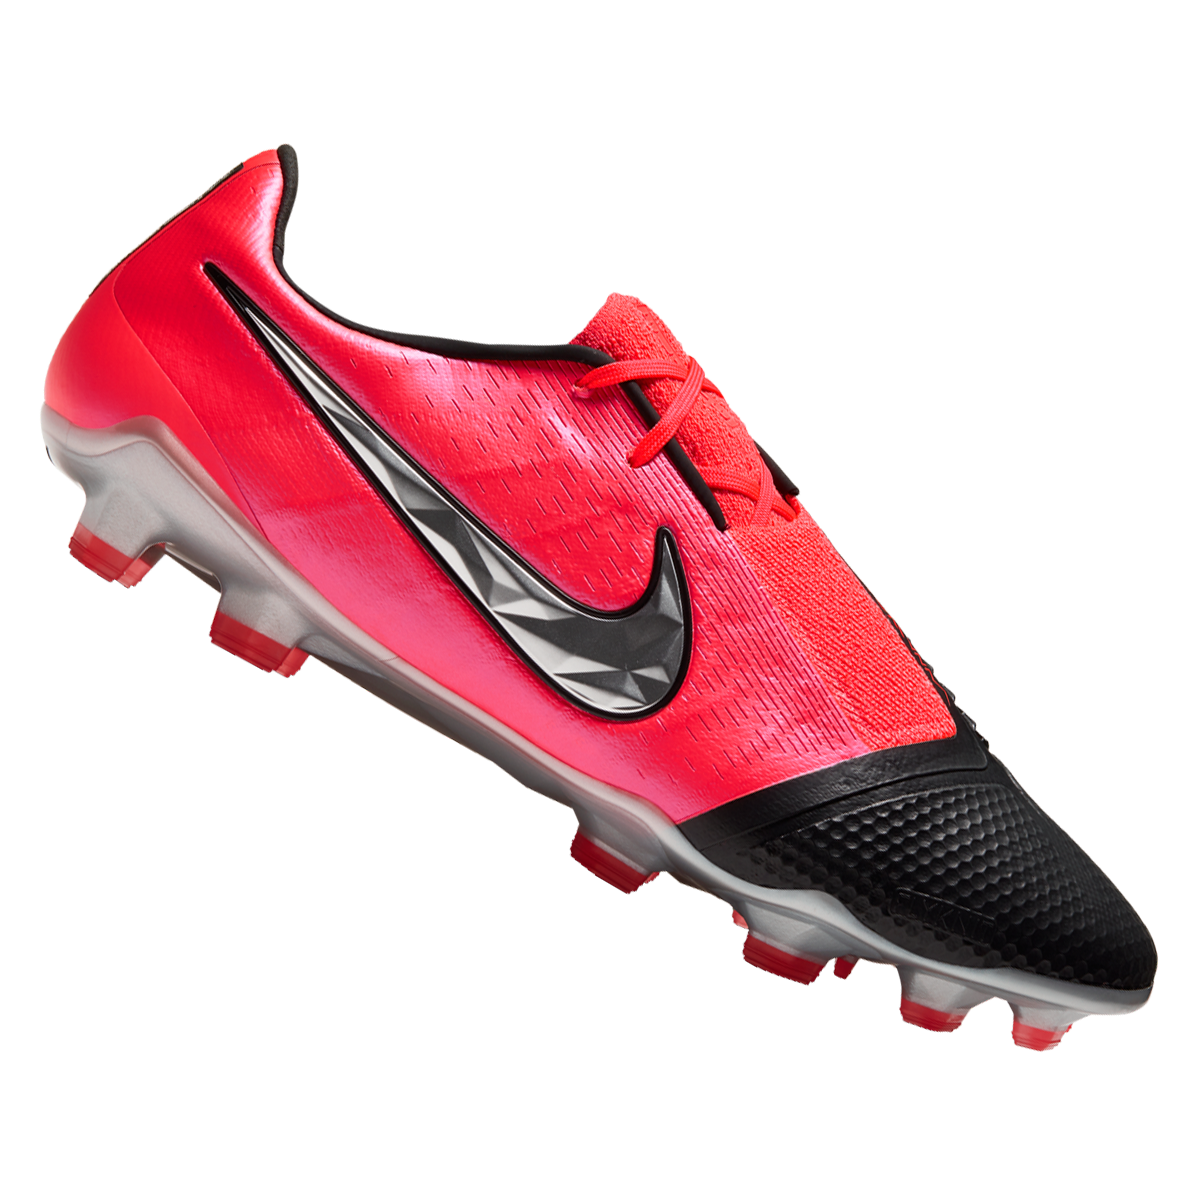 chaussures de foot nike rouge